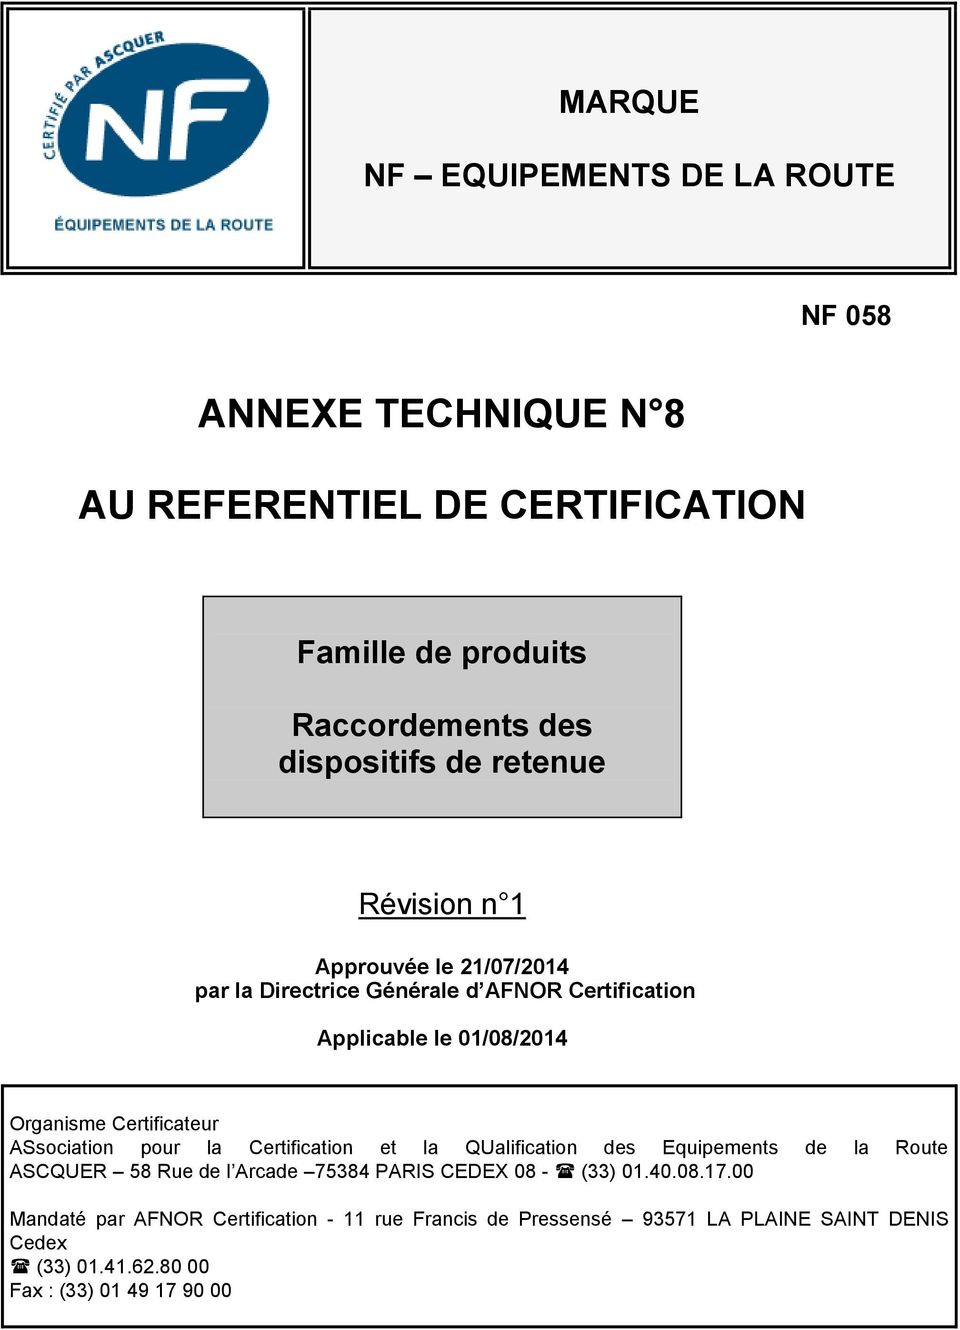 ASsociation pour la Certification et la QUalification des Equipements de la Route ASCQUER 58 Rue de l Arcade 75384 PARIS CEDEX 08 - (33) 01.40.08.17.